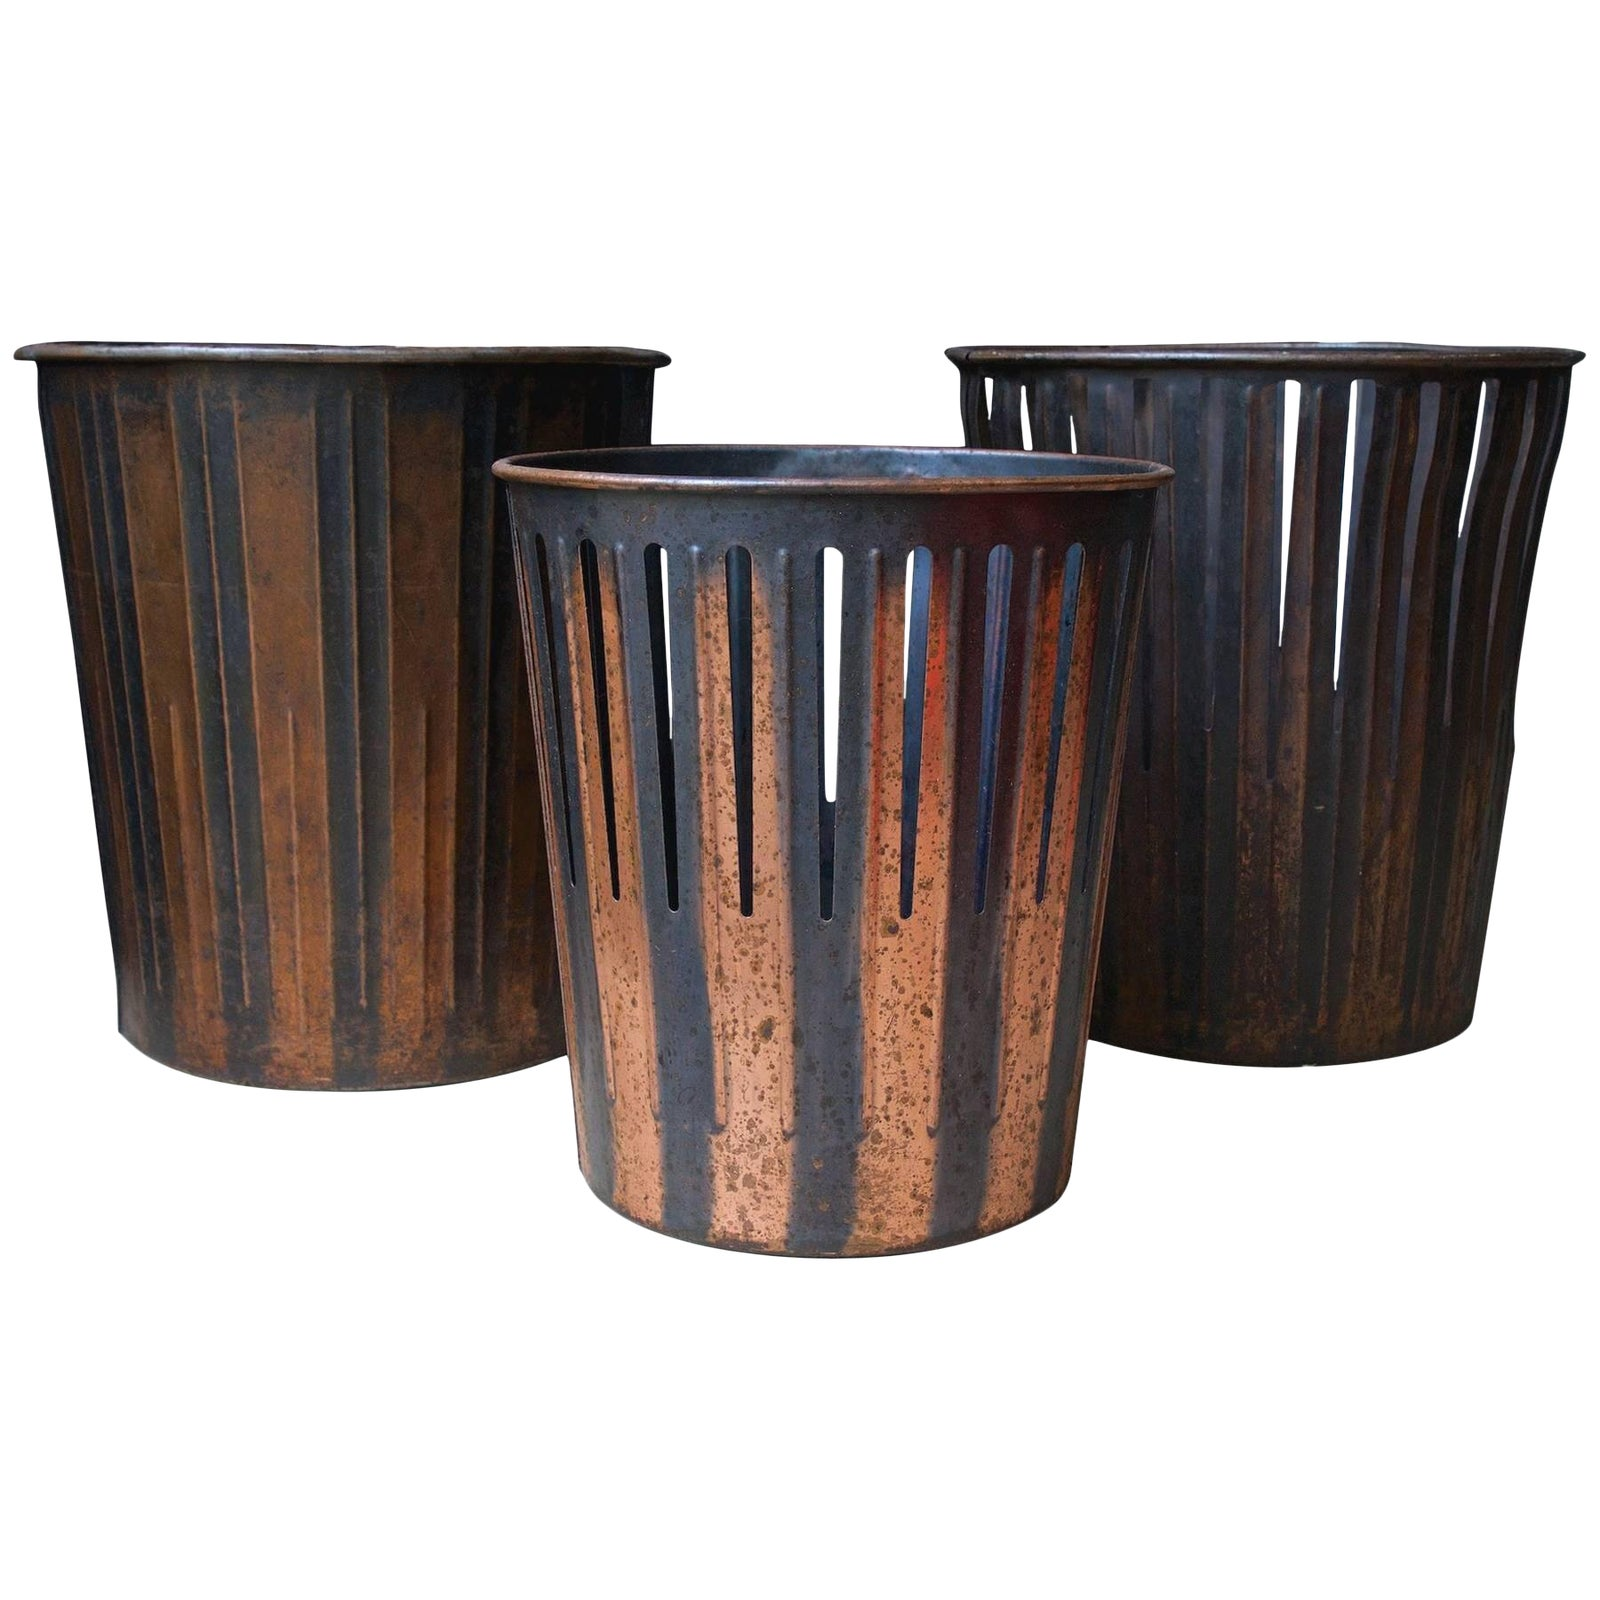 Japanned finished copper factory office trash cans wastebaskets chairish